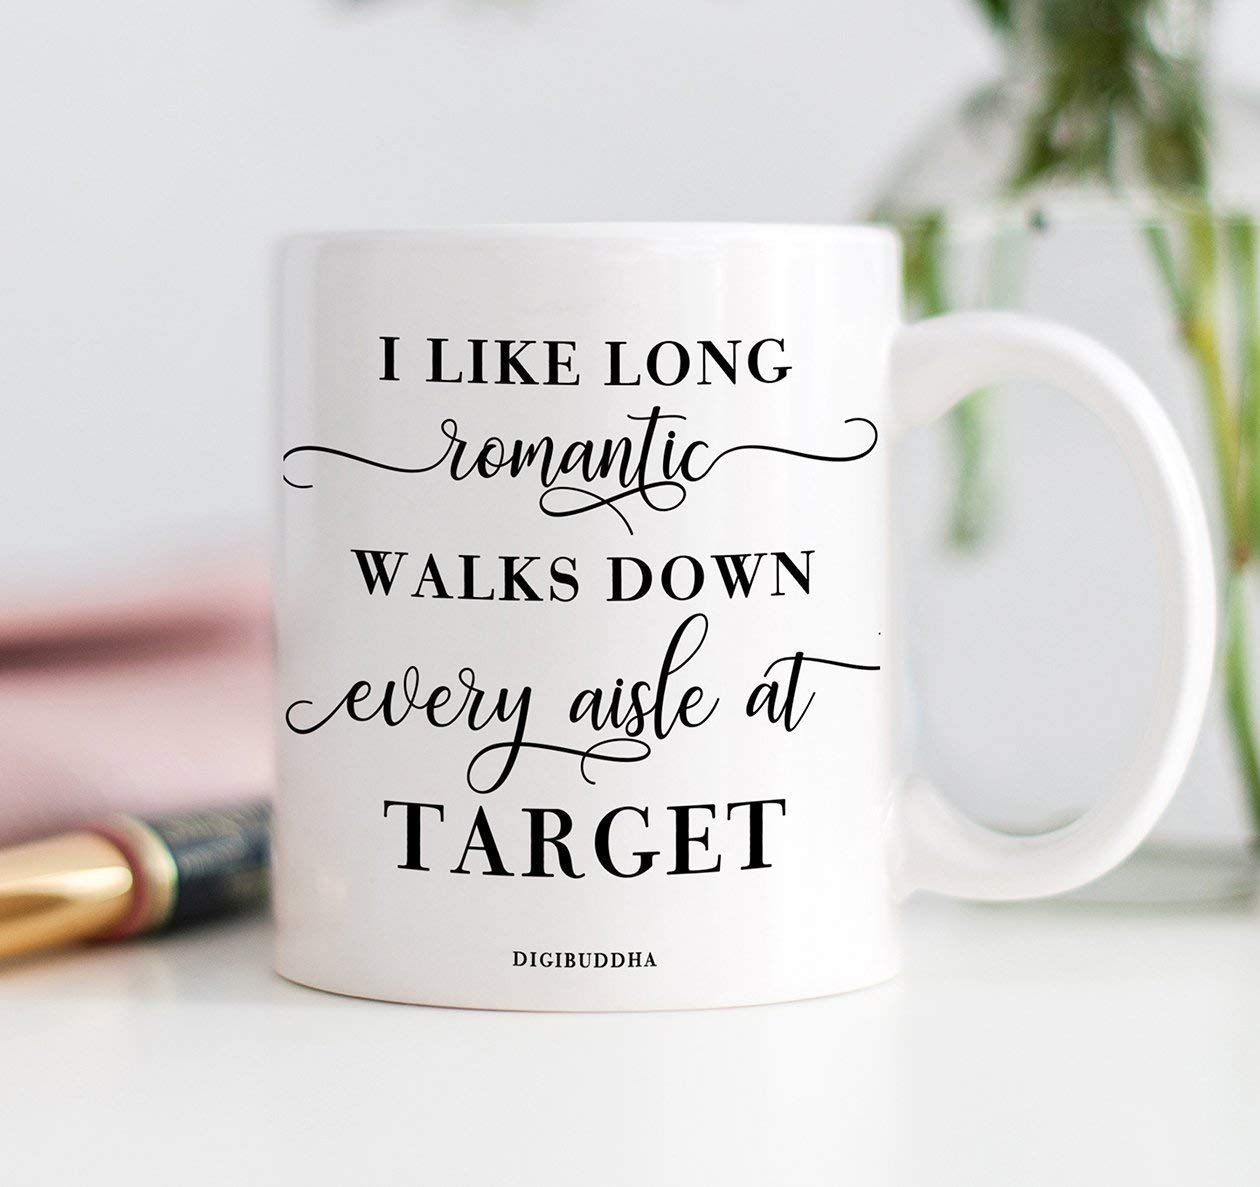 I Like Long Romantic Walks Down Every Aisle At Target Funny Mug Quote Christmas Present Idea Birthday Gifts for Women Mom Sister Friend Wife Bestie Girlfriend 11oz Ceramic Coffee Cup Digibuddha DM0337